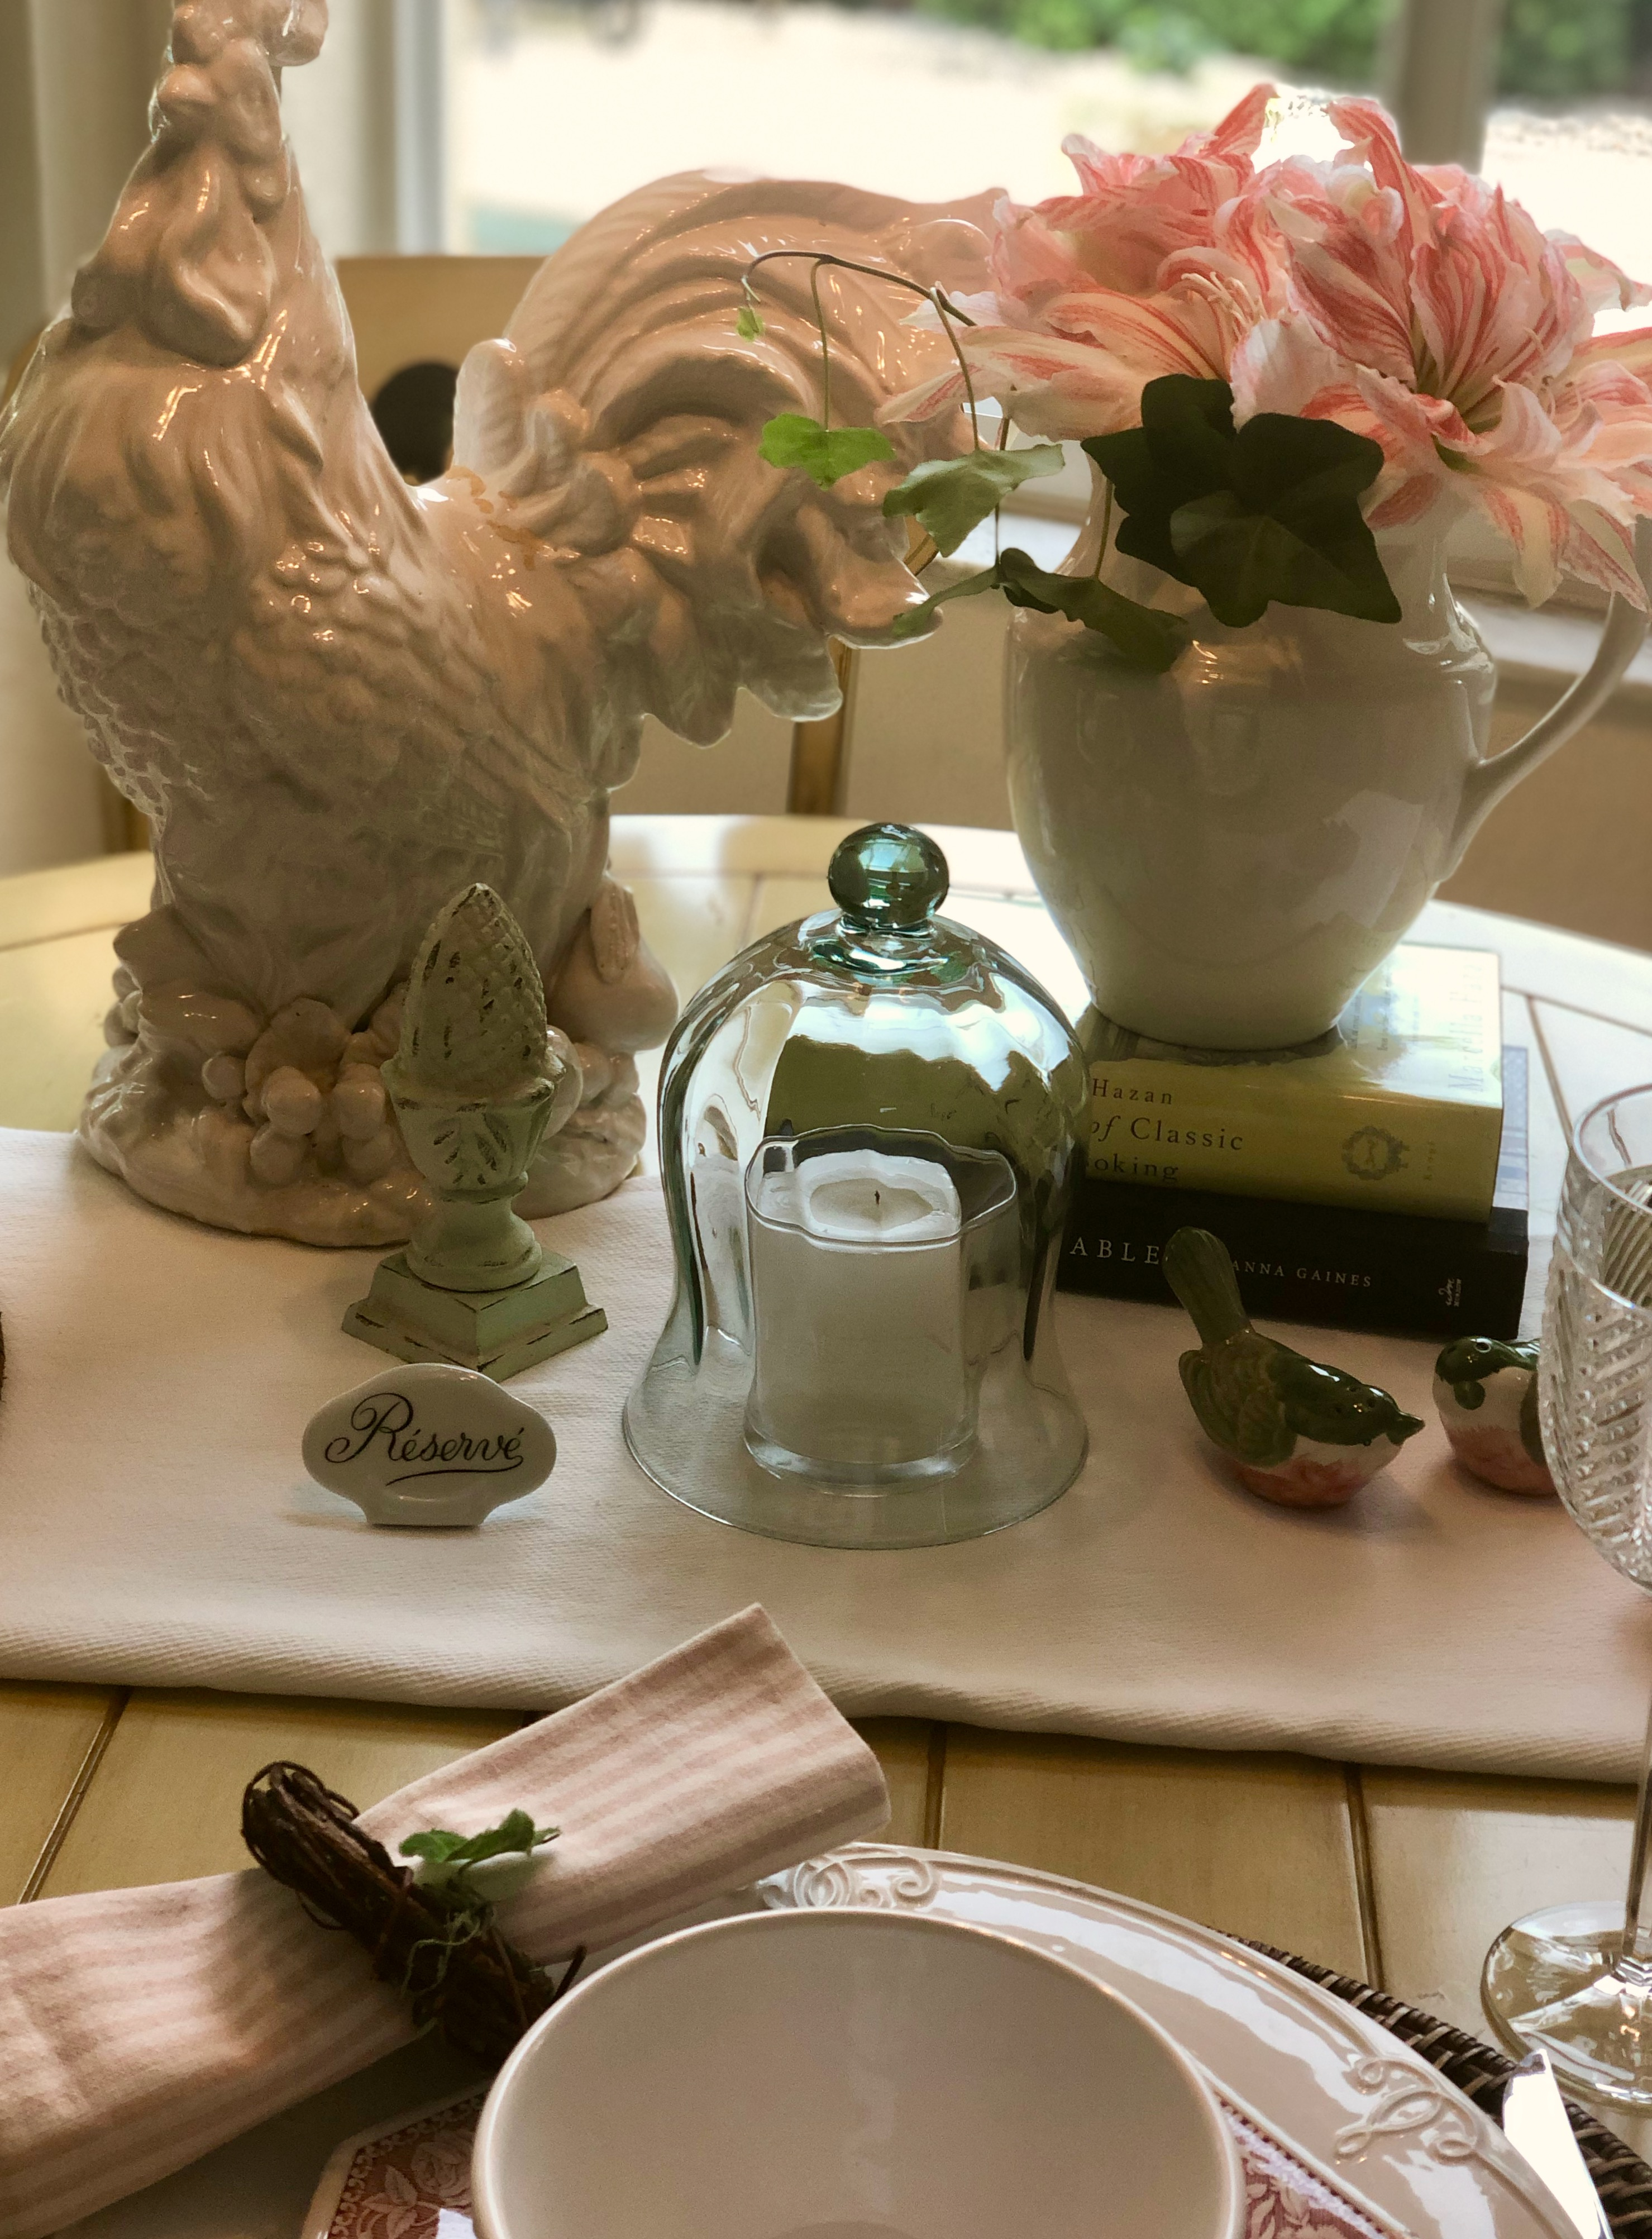 Spring table setting with rooster, pitcher with pink variegated amaryllis, garden finial, bird salt and pepper set and books